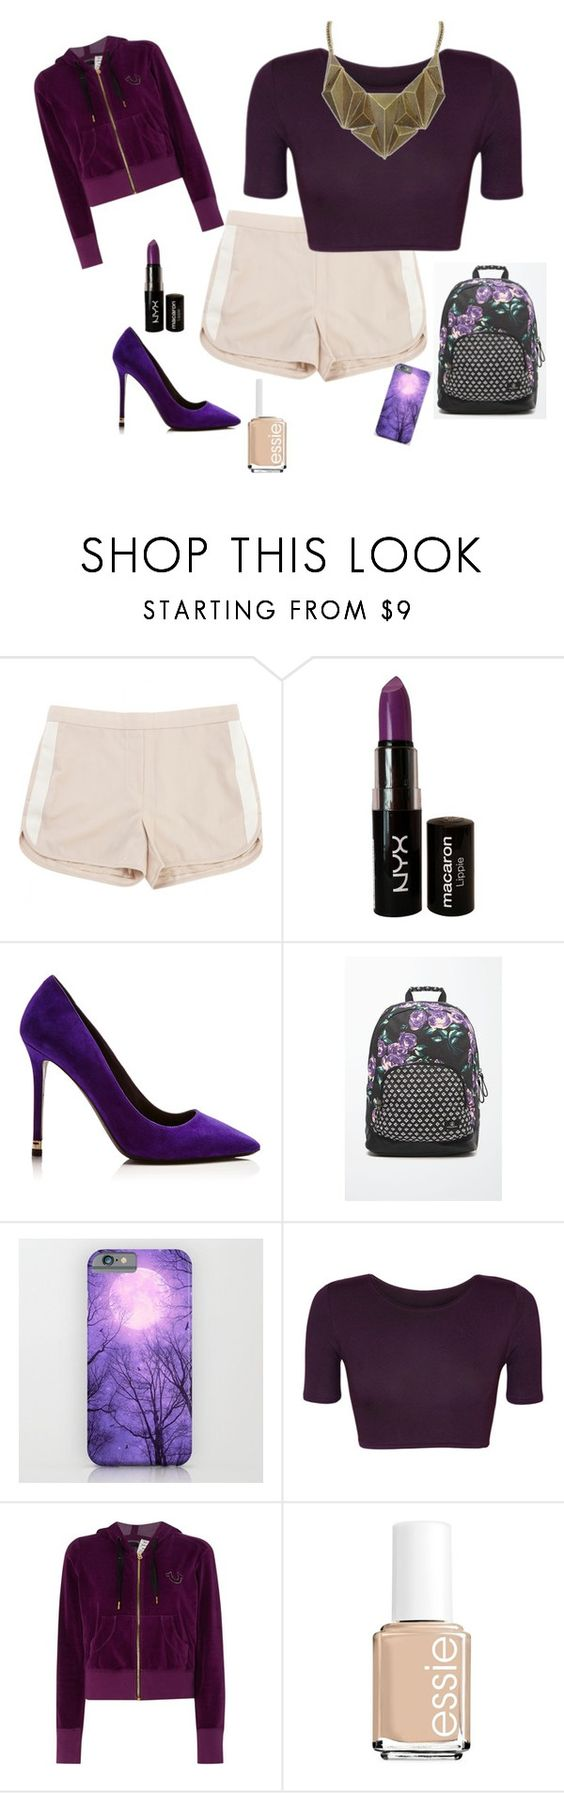 """purple"" by book-writer2002 on Polyvore featuring Tommy Hilfiger, NYX, Nicholas Kirkwood, Volcom, WearAll, True Religion, Essie and Chicnova Fashion"